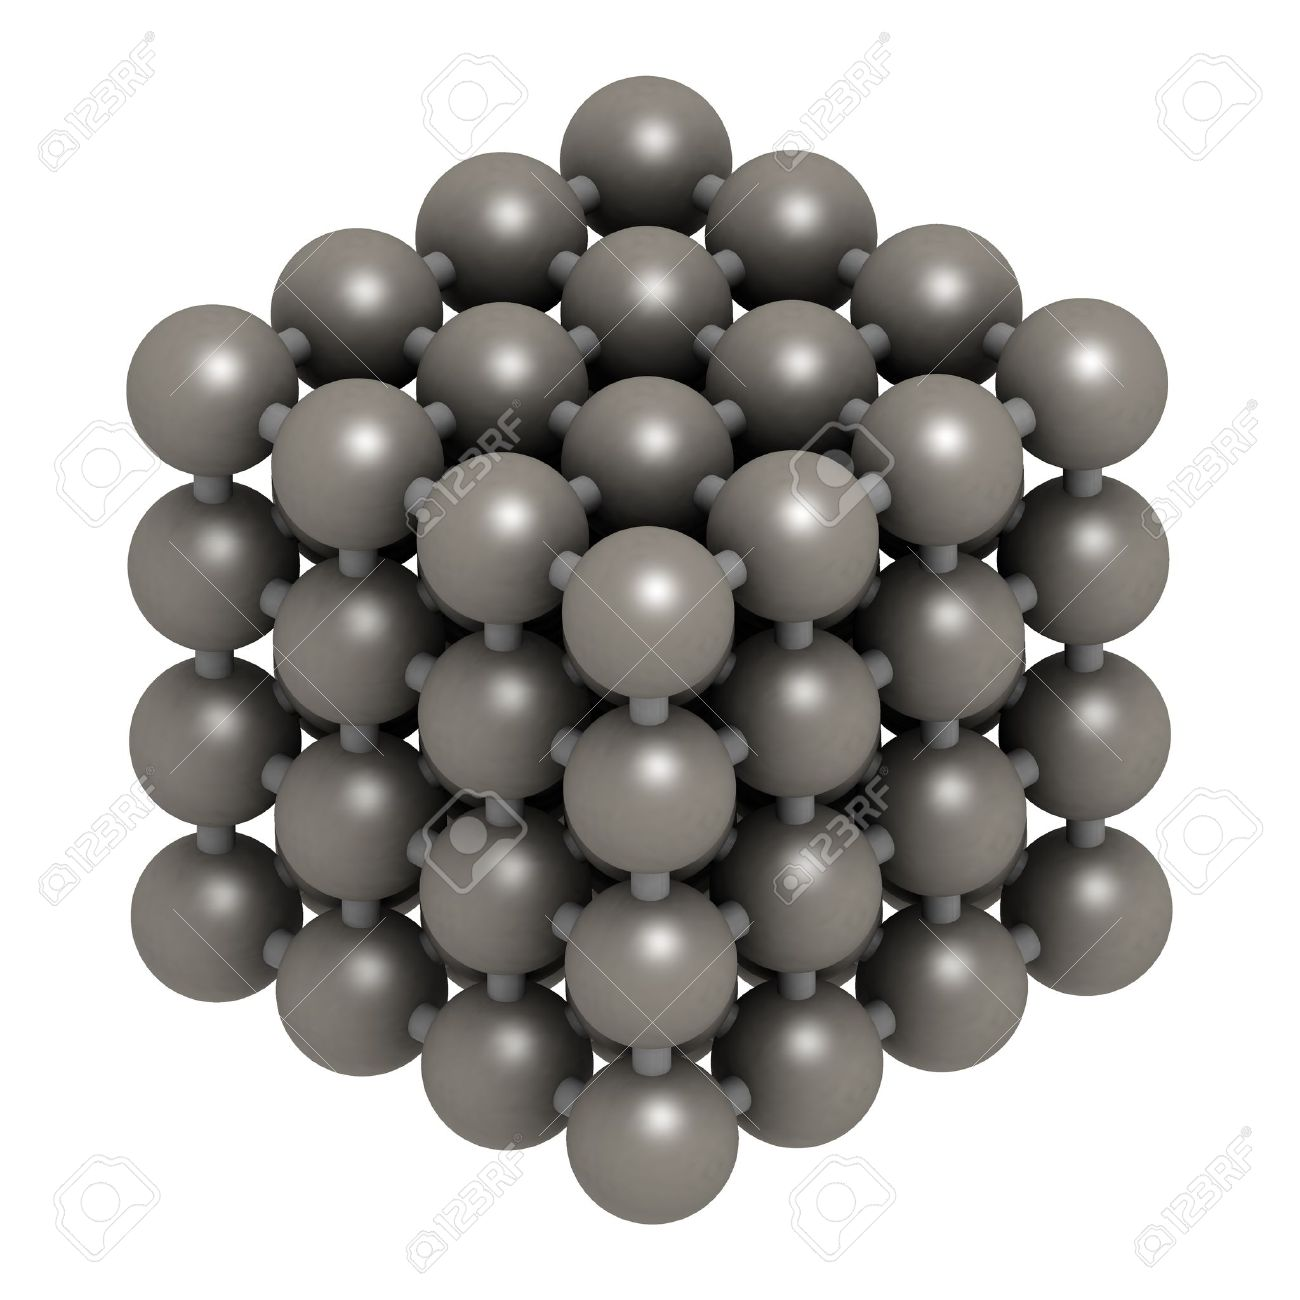 Iron (Fe, ferrite) metal, crystal structure. Stock Photo - 17236626